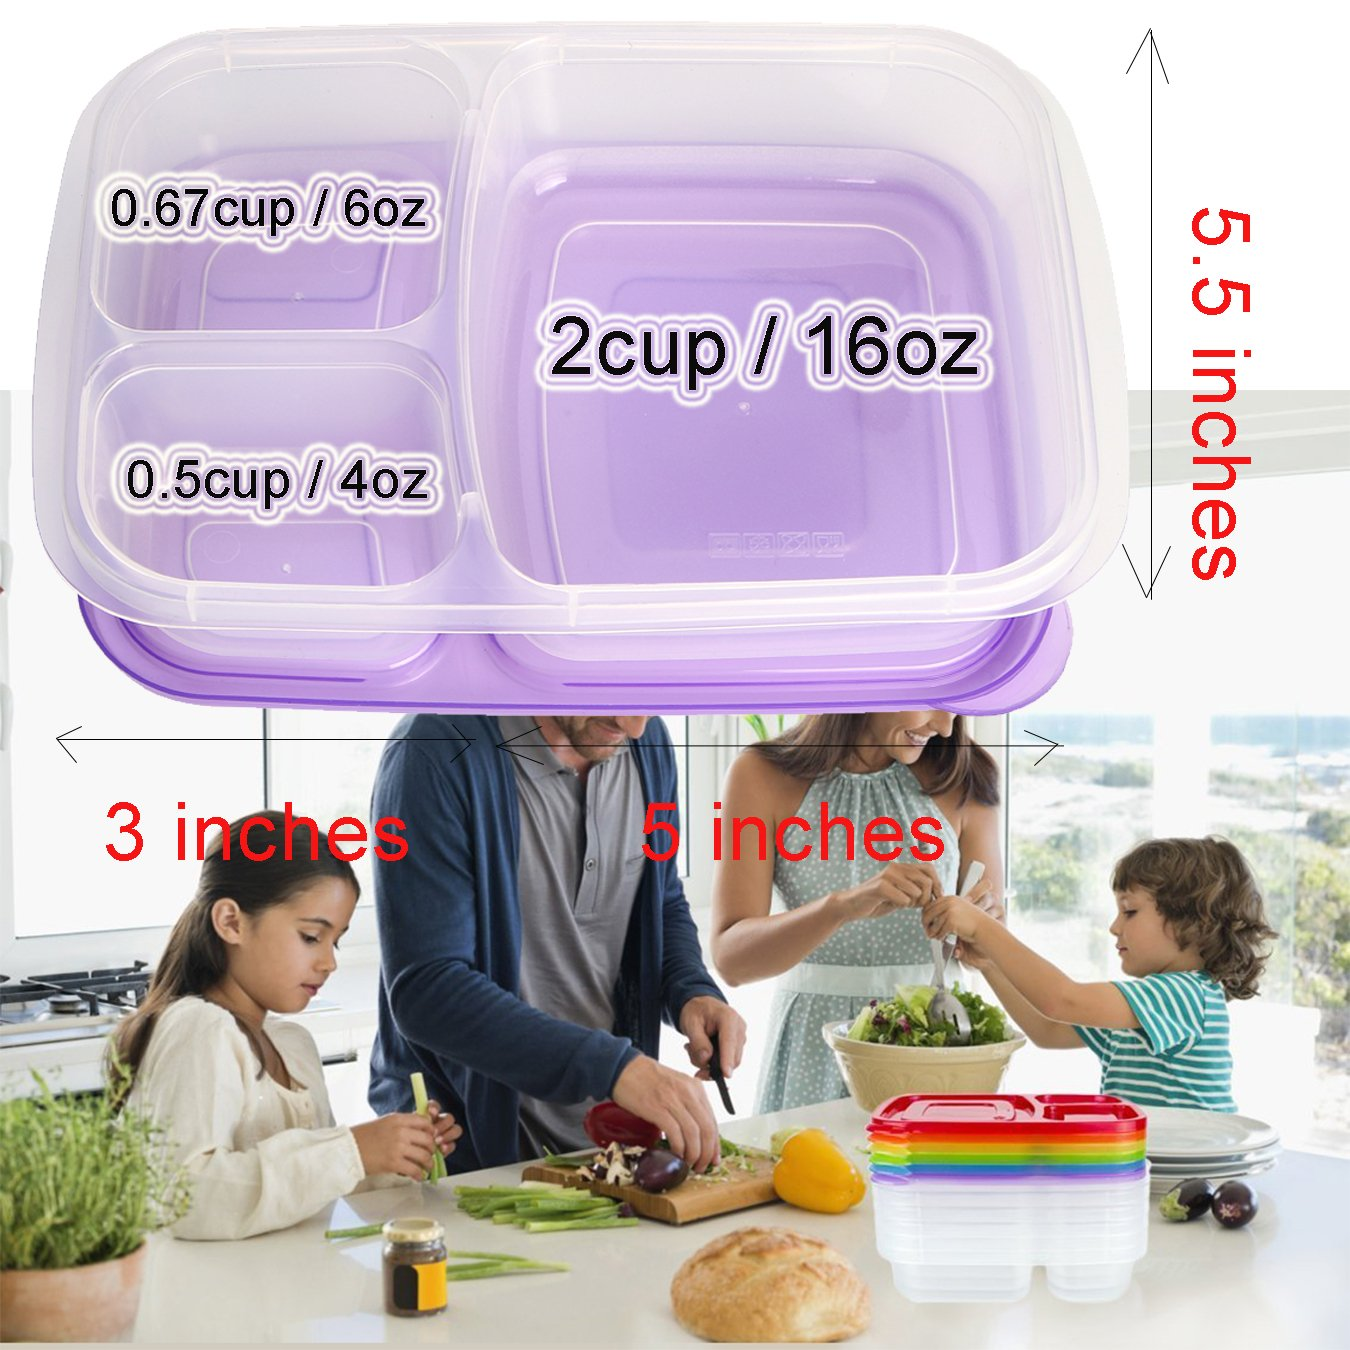 Meal Prep Containers 3 Compartment 10 Pack Food Prep Containers with Lids Portion Control Reauable Freezer Food Storage Plastic Salad Stackable Bento Lunch Box, Microwave, Dishwasher Safe by SCIONE (Image #6)